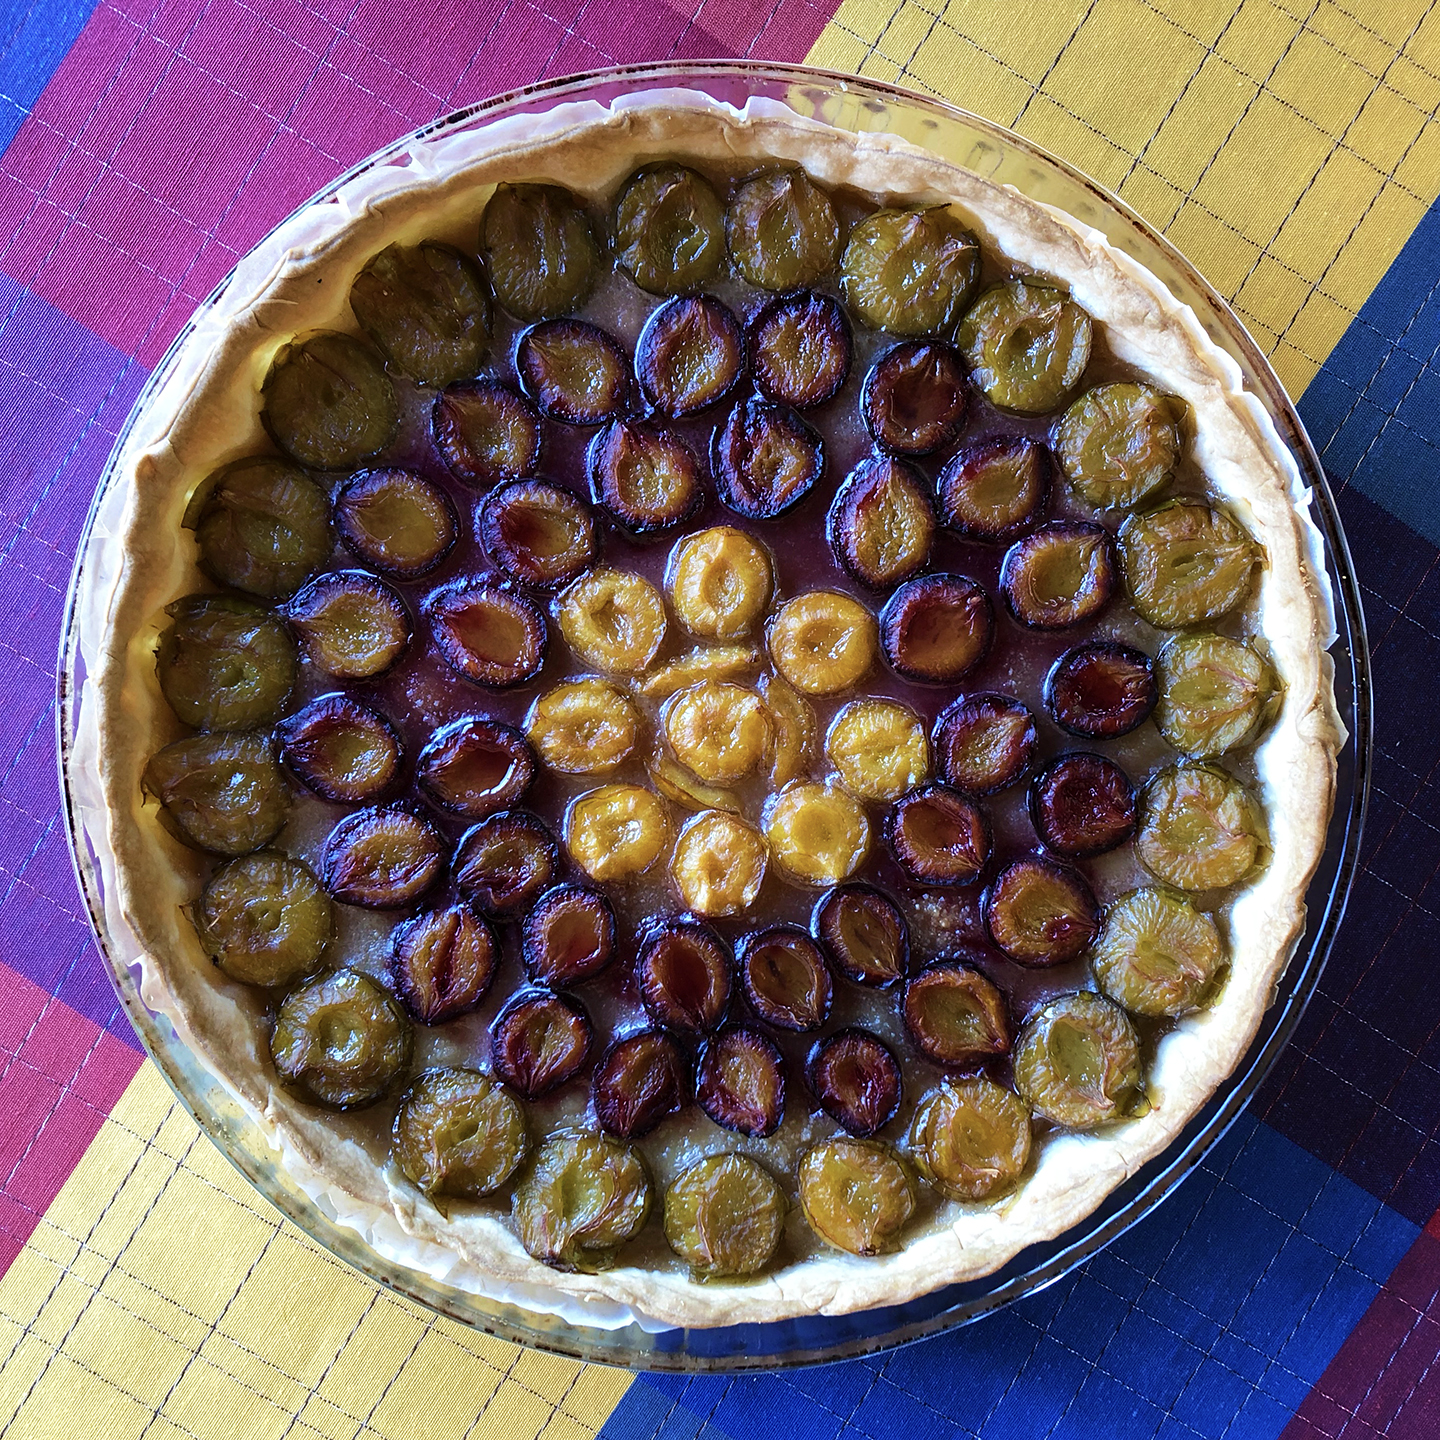 Three plum tart